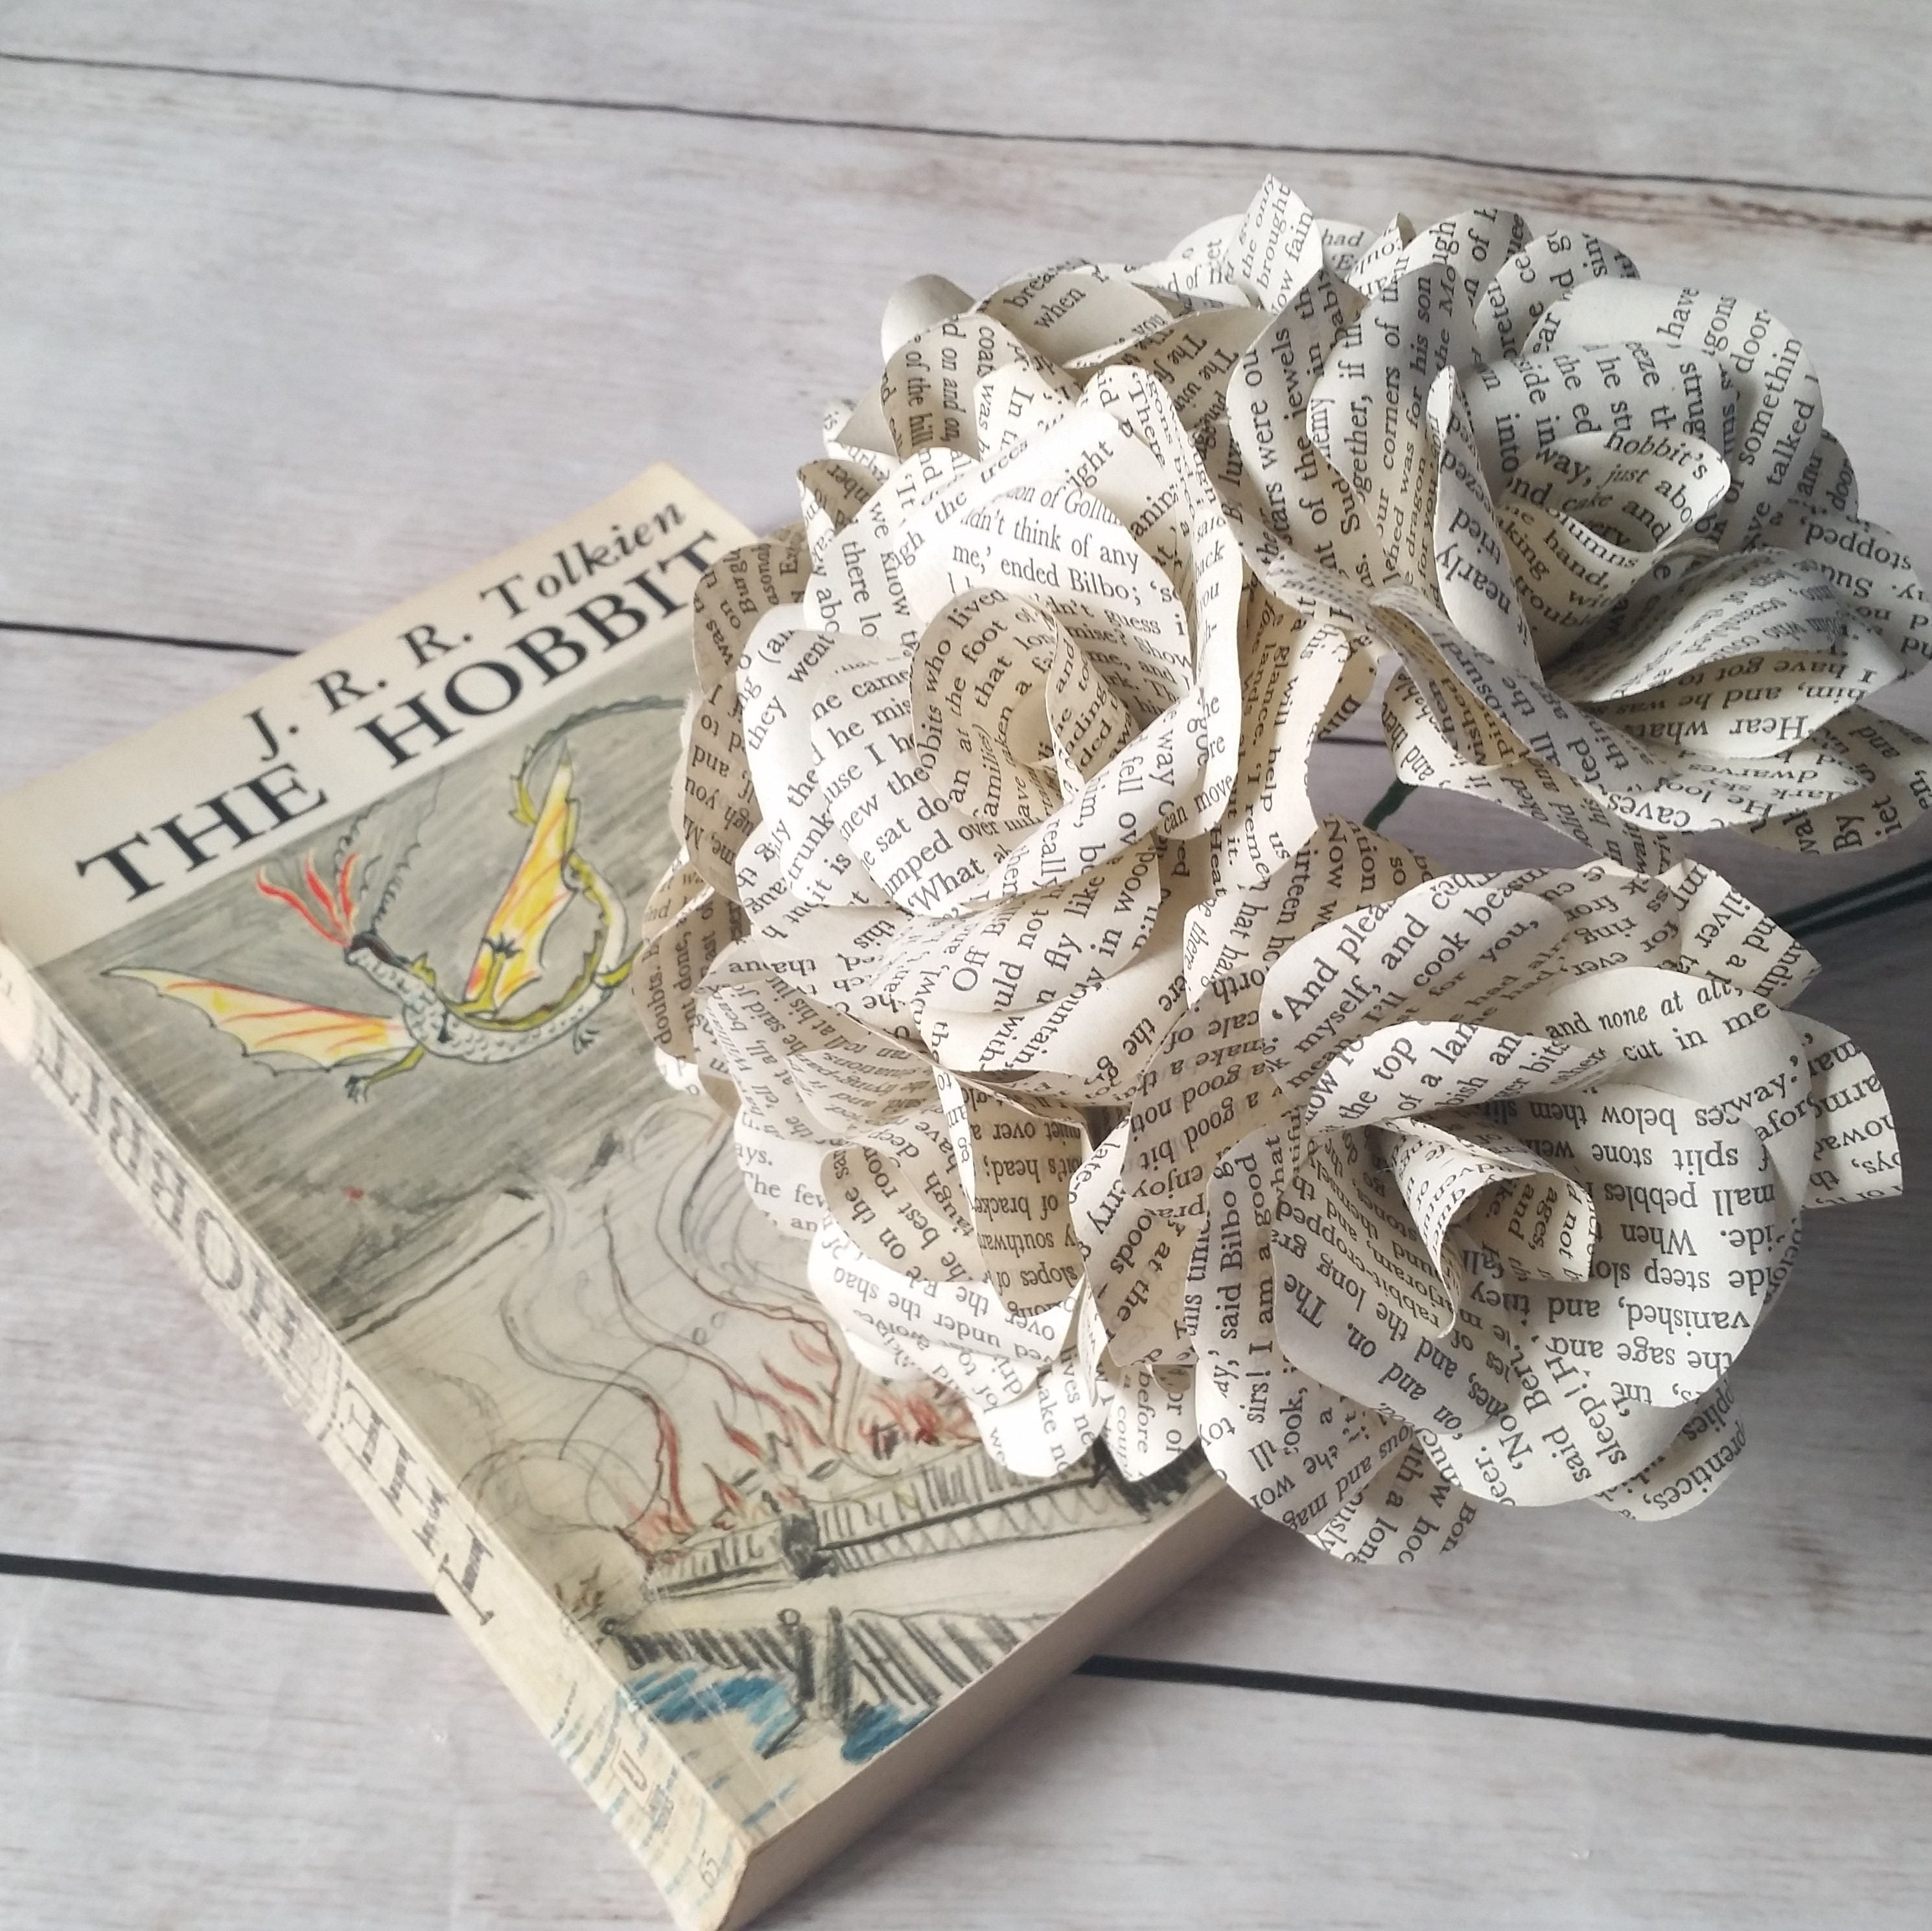 6 x the hobbit paper roses book page paper flower roses handmade 6 x the hobbit paper roses book page paper flower roses handmade paper roses mightylinksfo